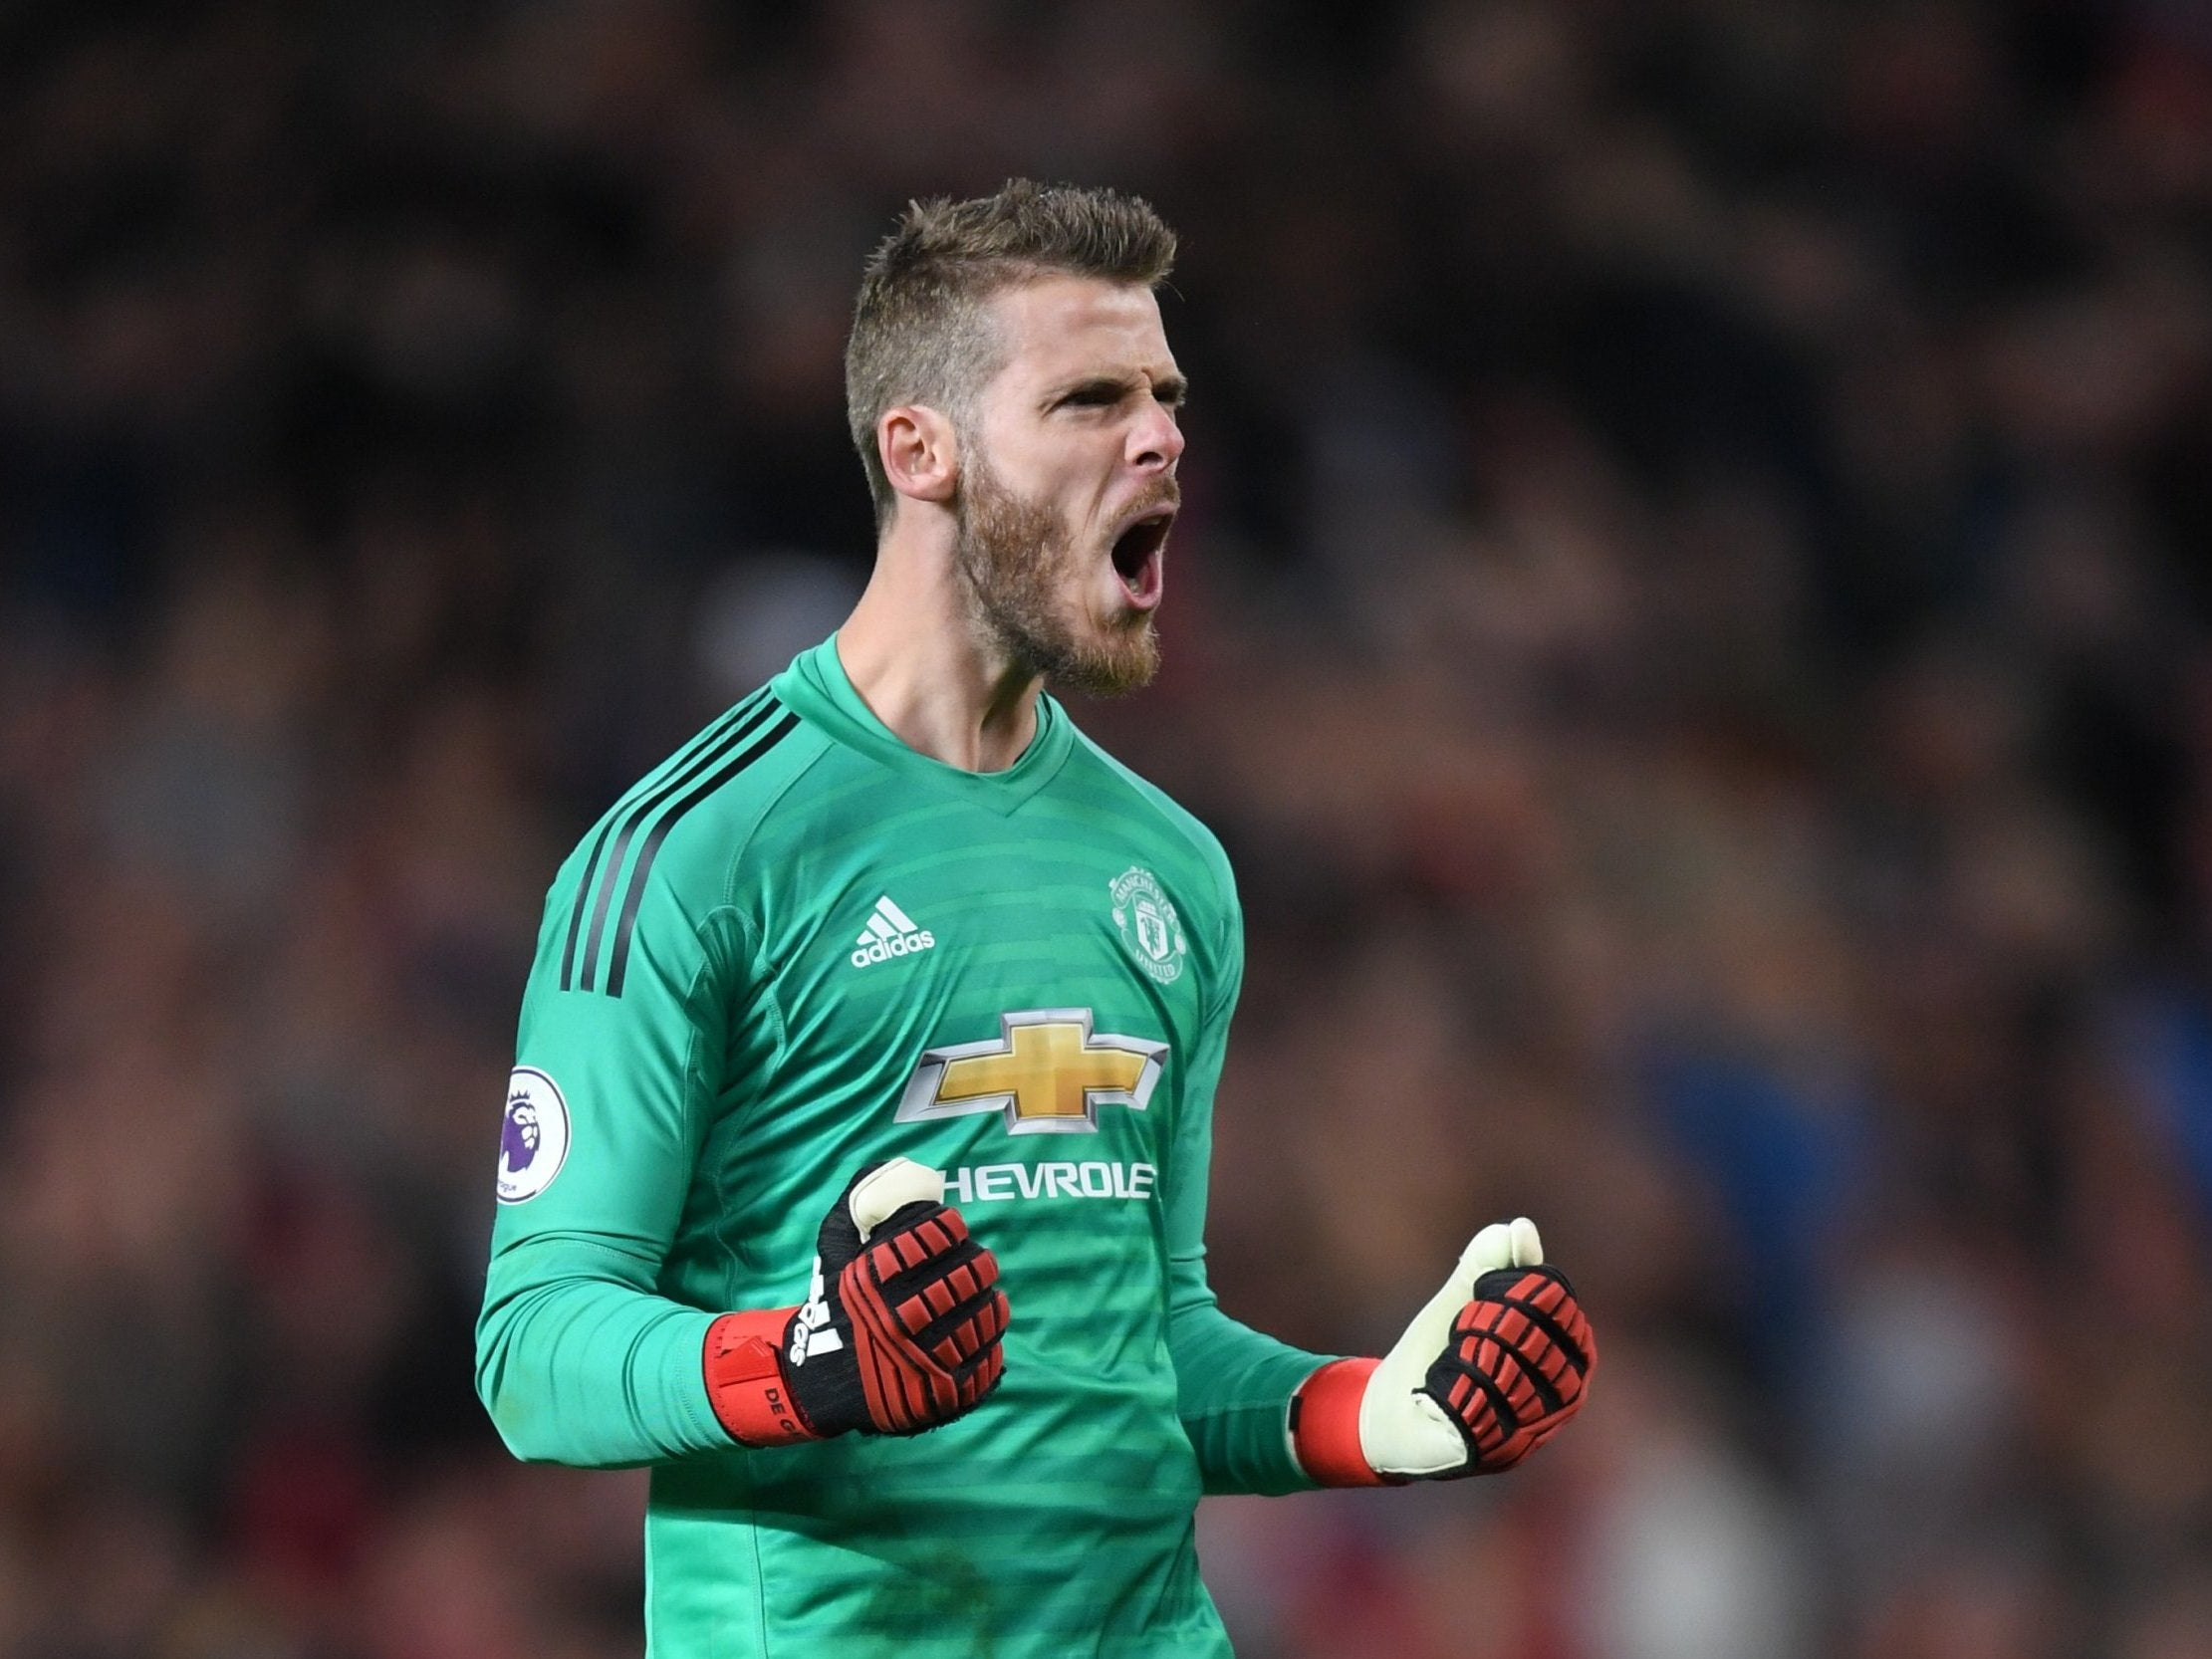 Manchester United transfer news: David de Gea talks to be pushed through after Real Madrid's Thibaut Courtois move